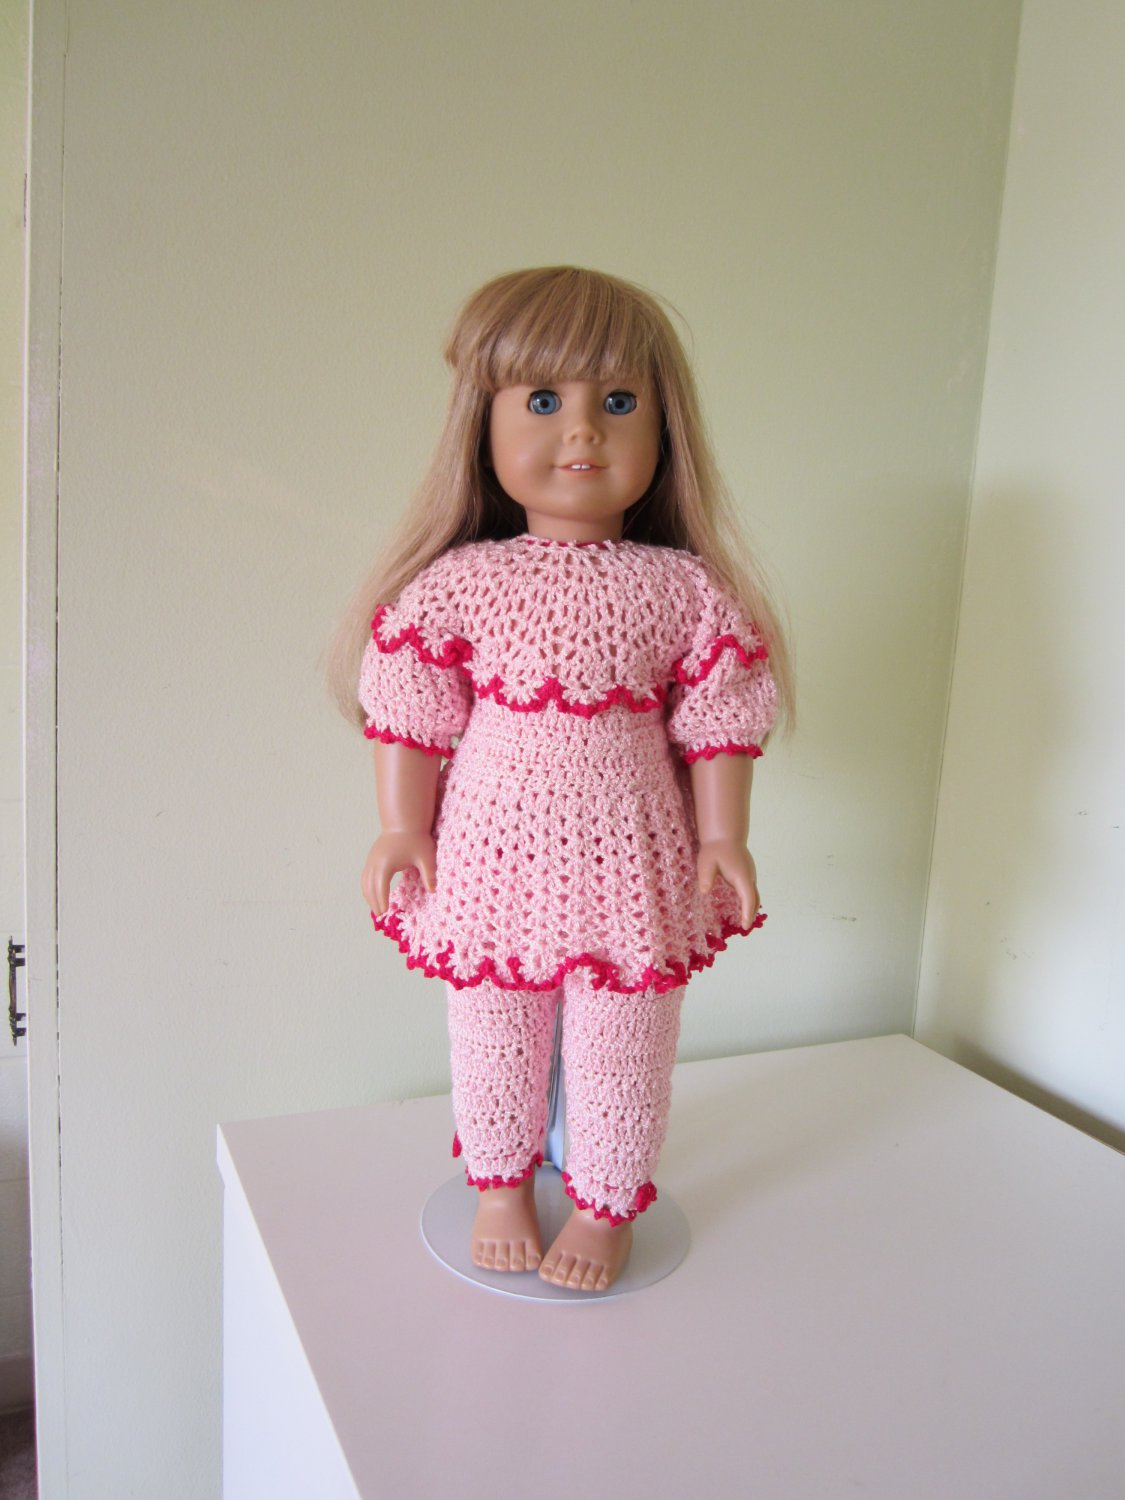 Crochet American Girl Doll Outfit